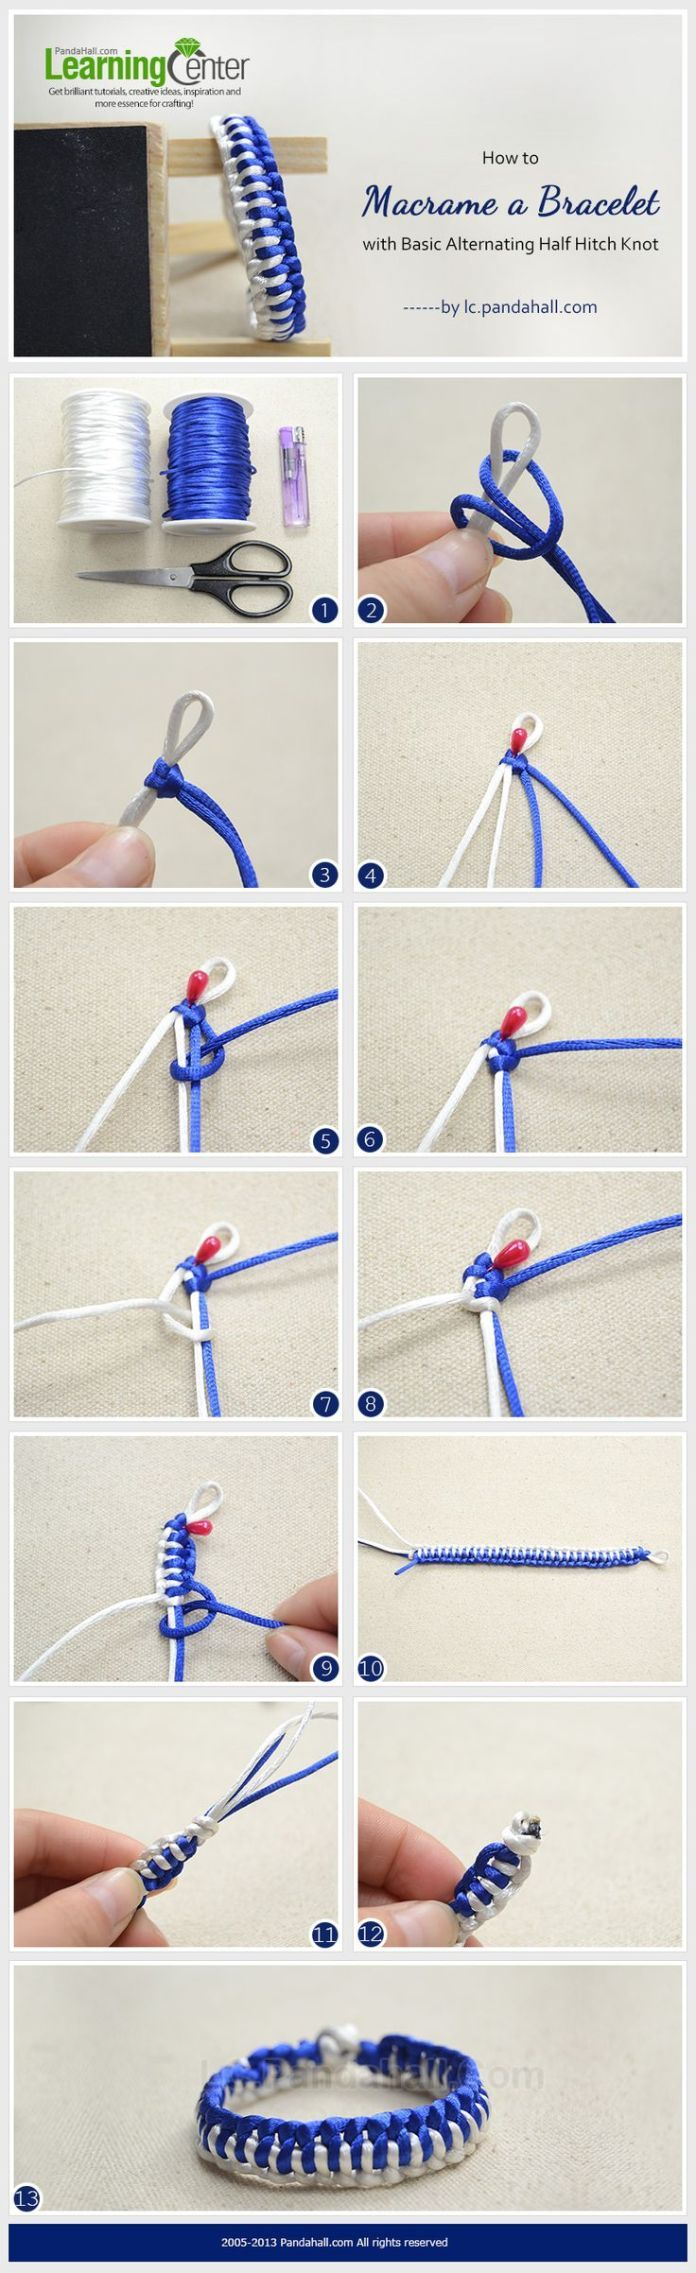 DIY Jewelry: How to Macrame a Bracelet with Basic Alternating Half Hitch Knot